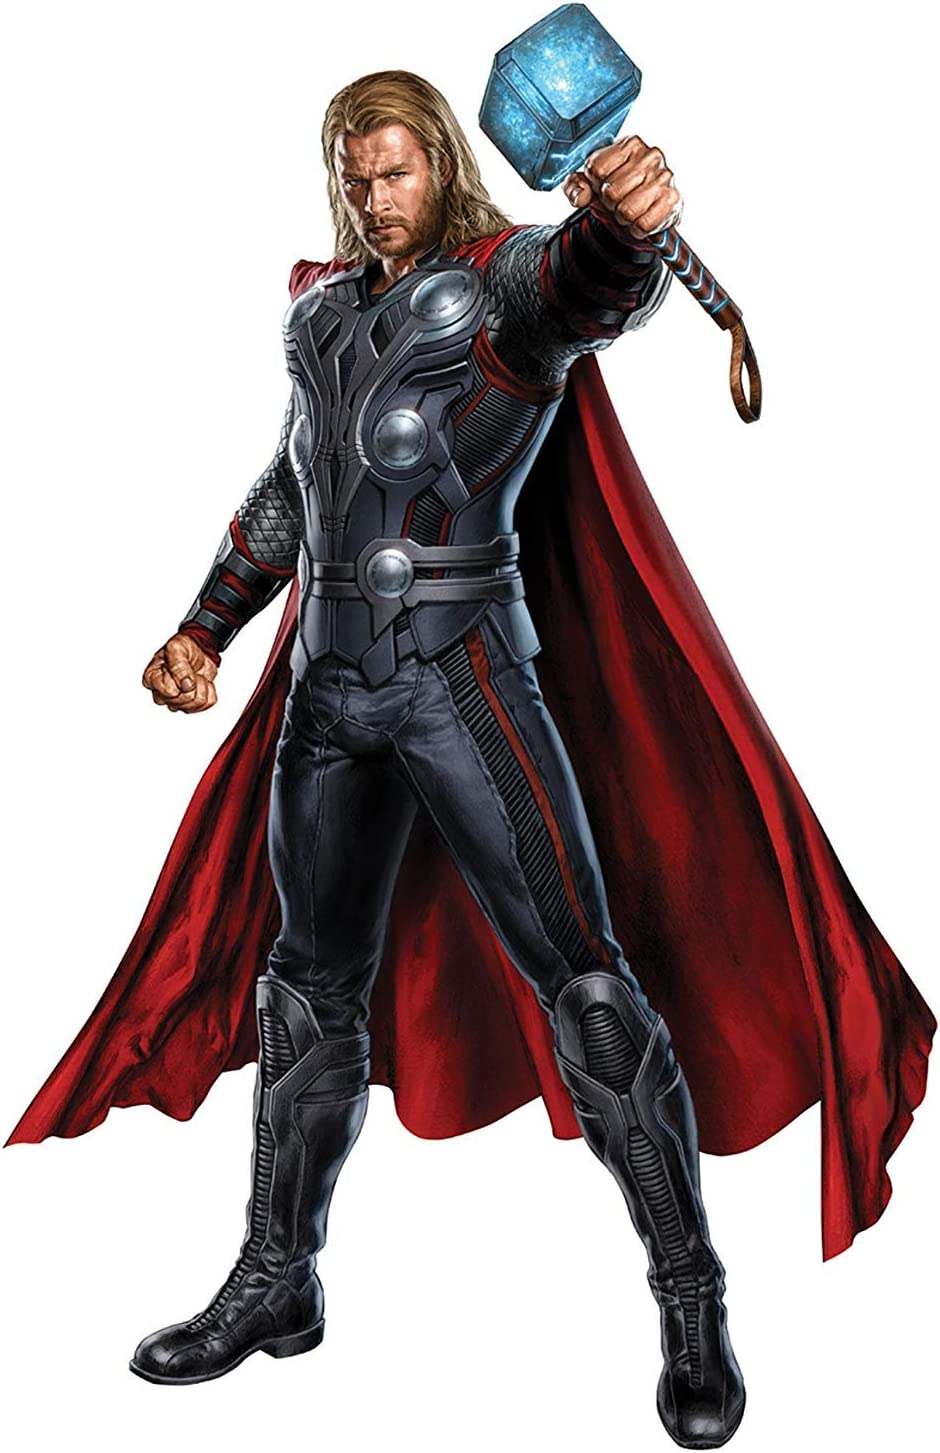 Marvel Superheroes Comic - The Avengers - Thor Odinson - God of Thunder Giant Wall Decal Sticker